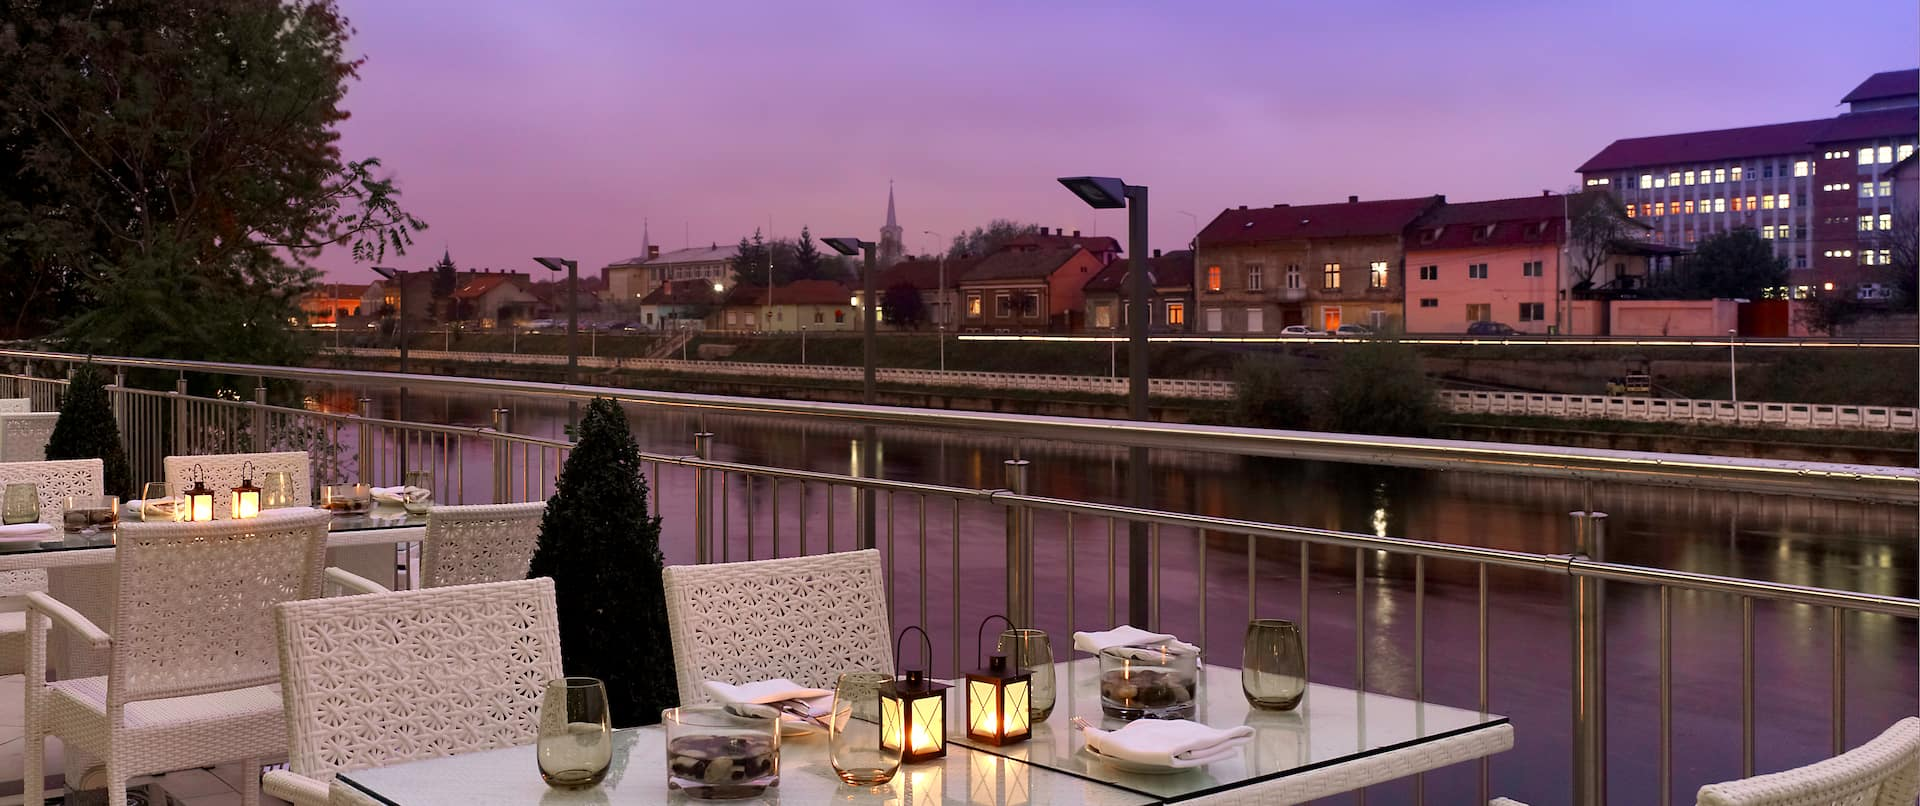 Laurus Restaurant Patio Dining Tables With Place Settings, Candles, White Chairs, and View of Illuminated City at Night